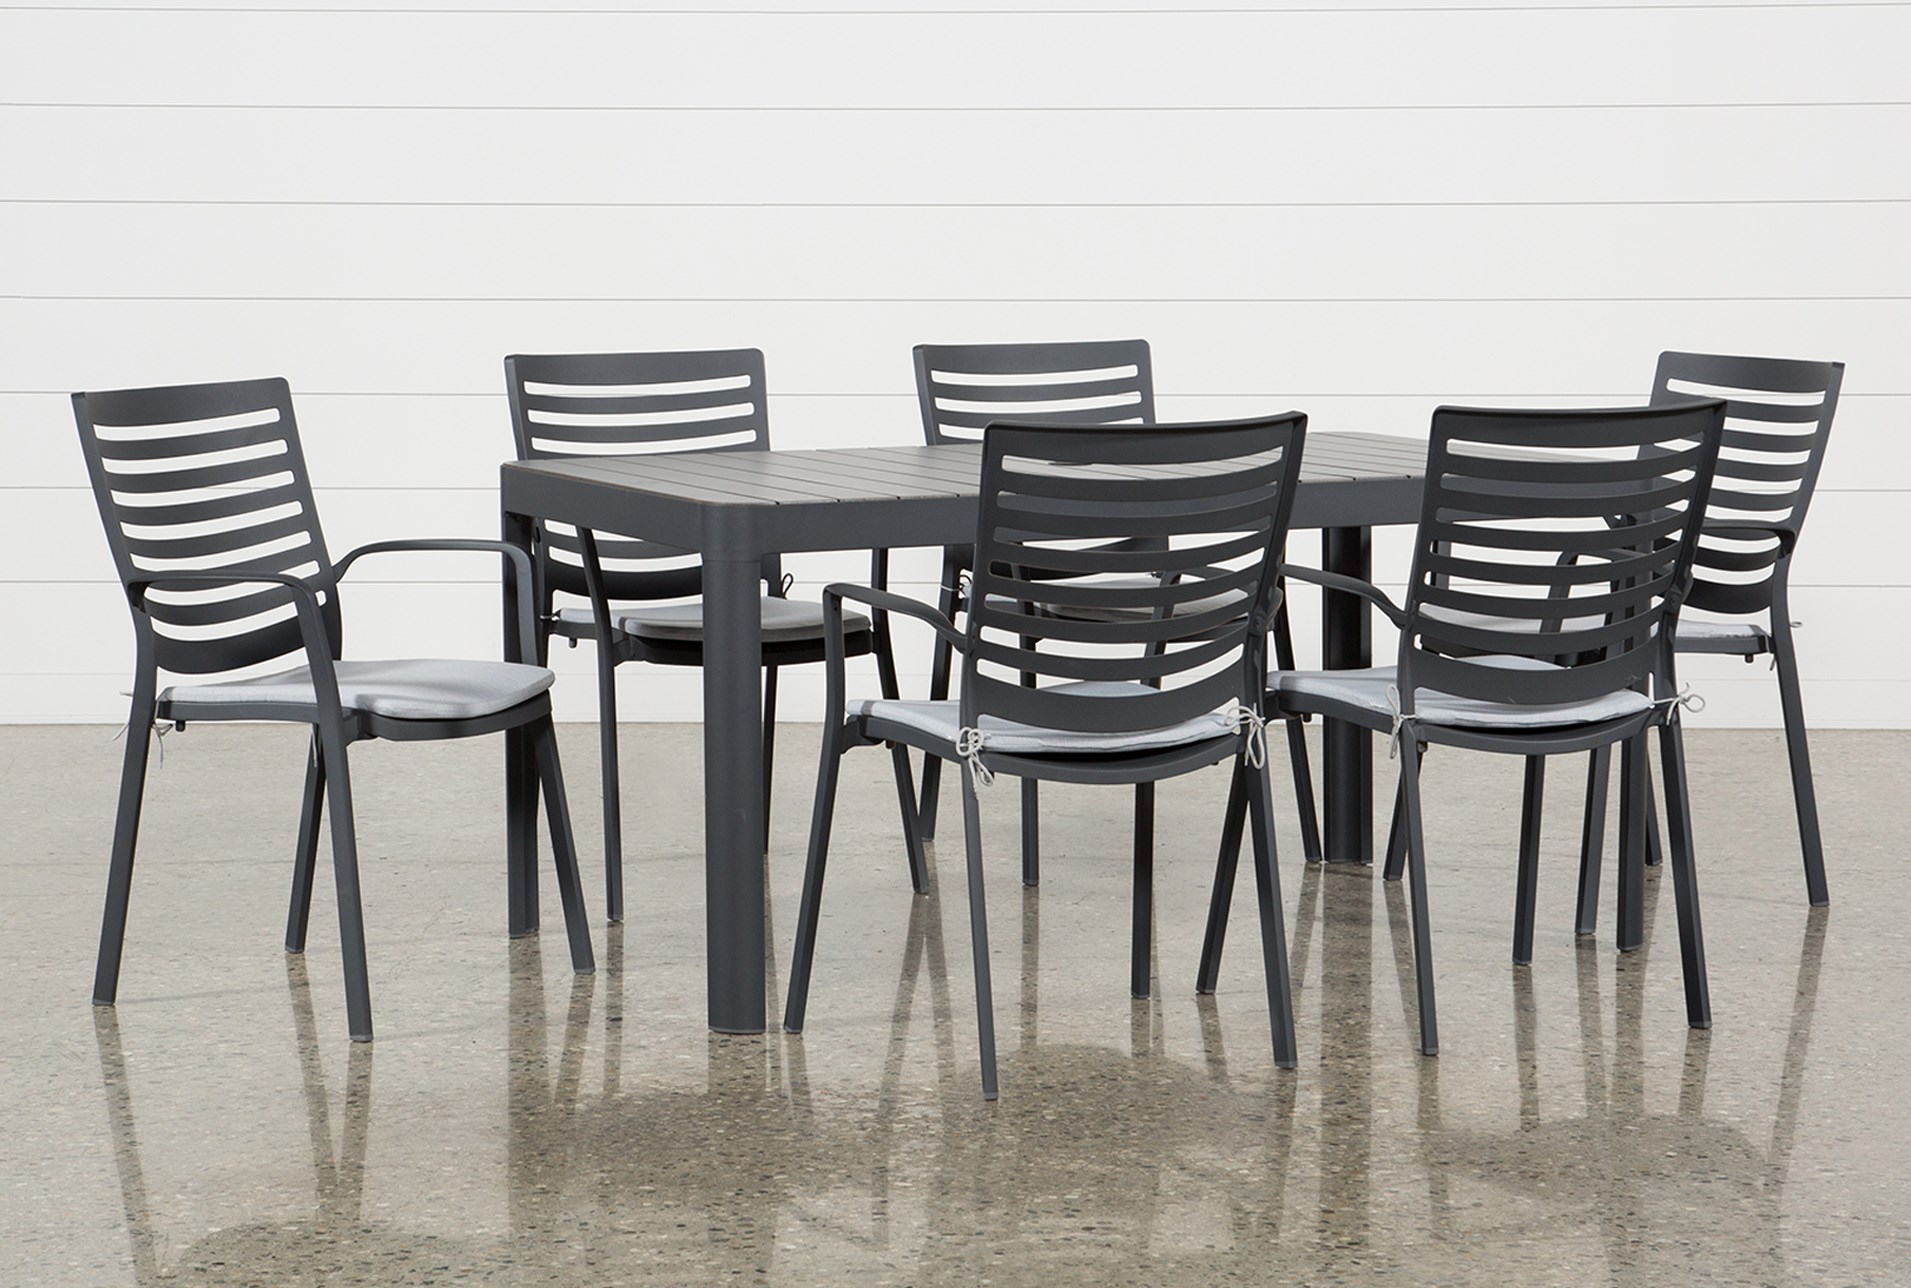 7 piece outdoor dining set belleville outdoor andaz piece dining set qty 1 has been successfully added to your cart living spaces